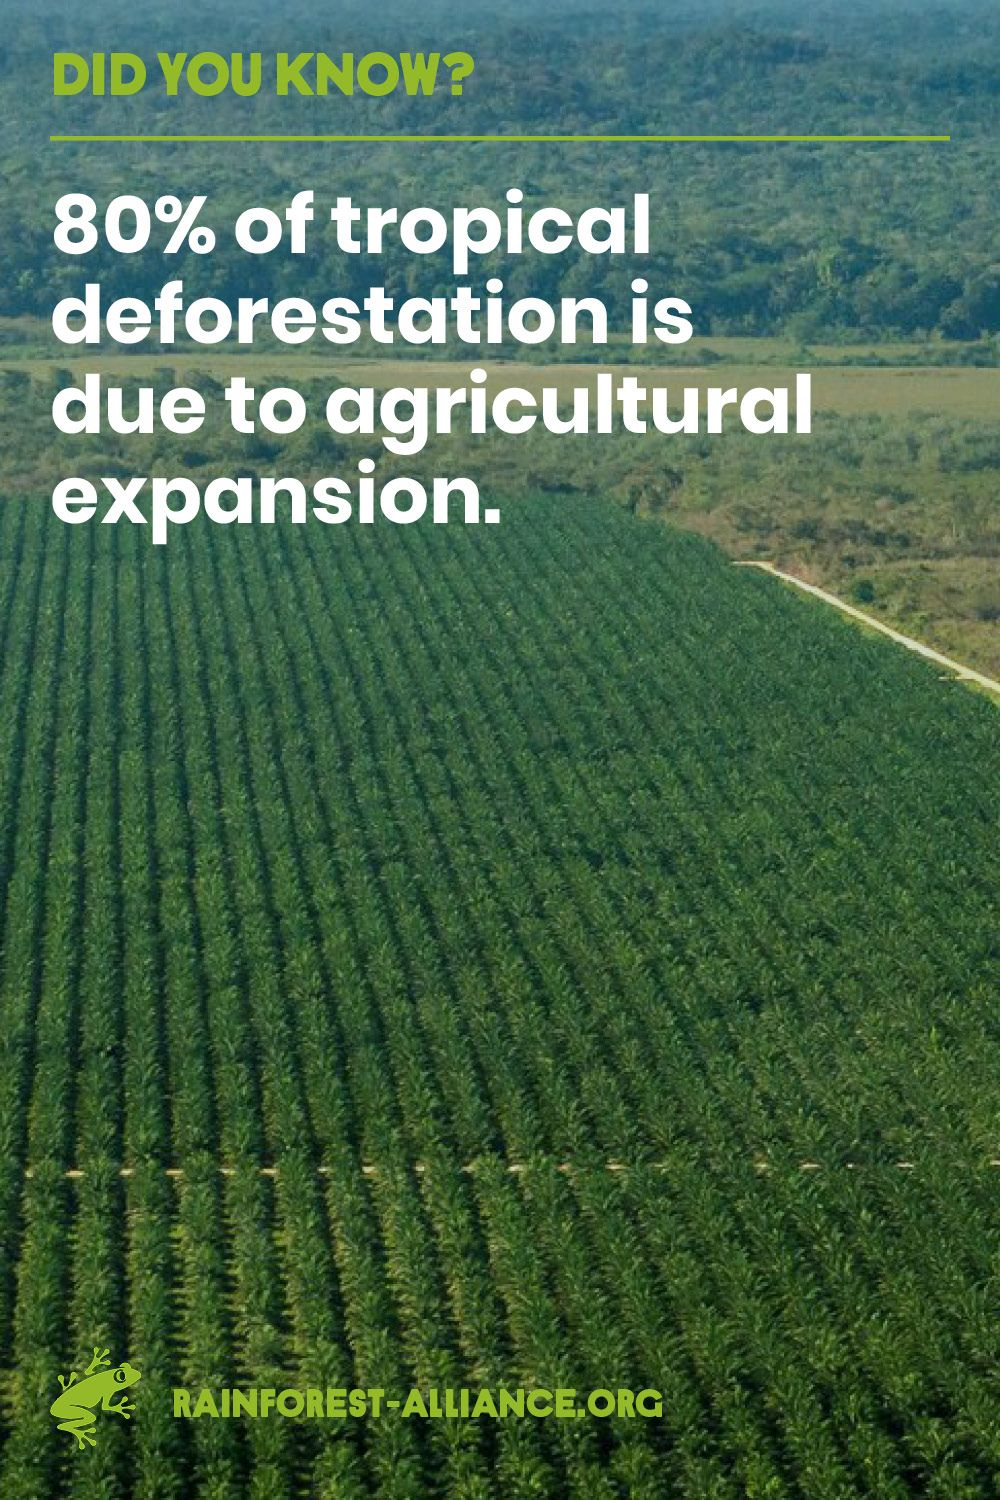 From Brazil to Indonesia, big agribusiness is razing huge